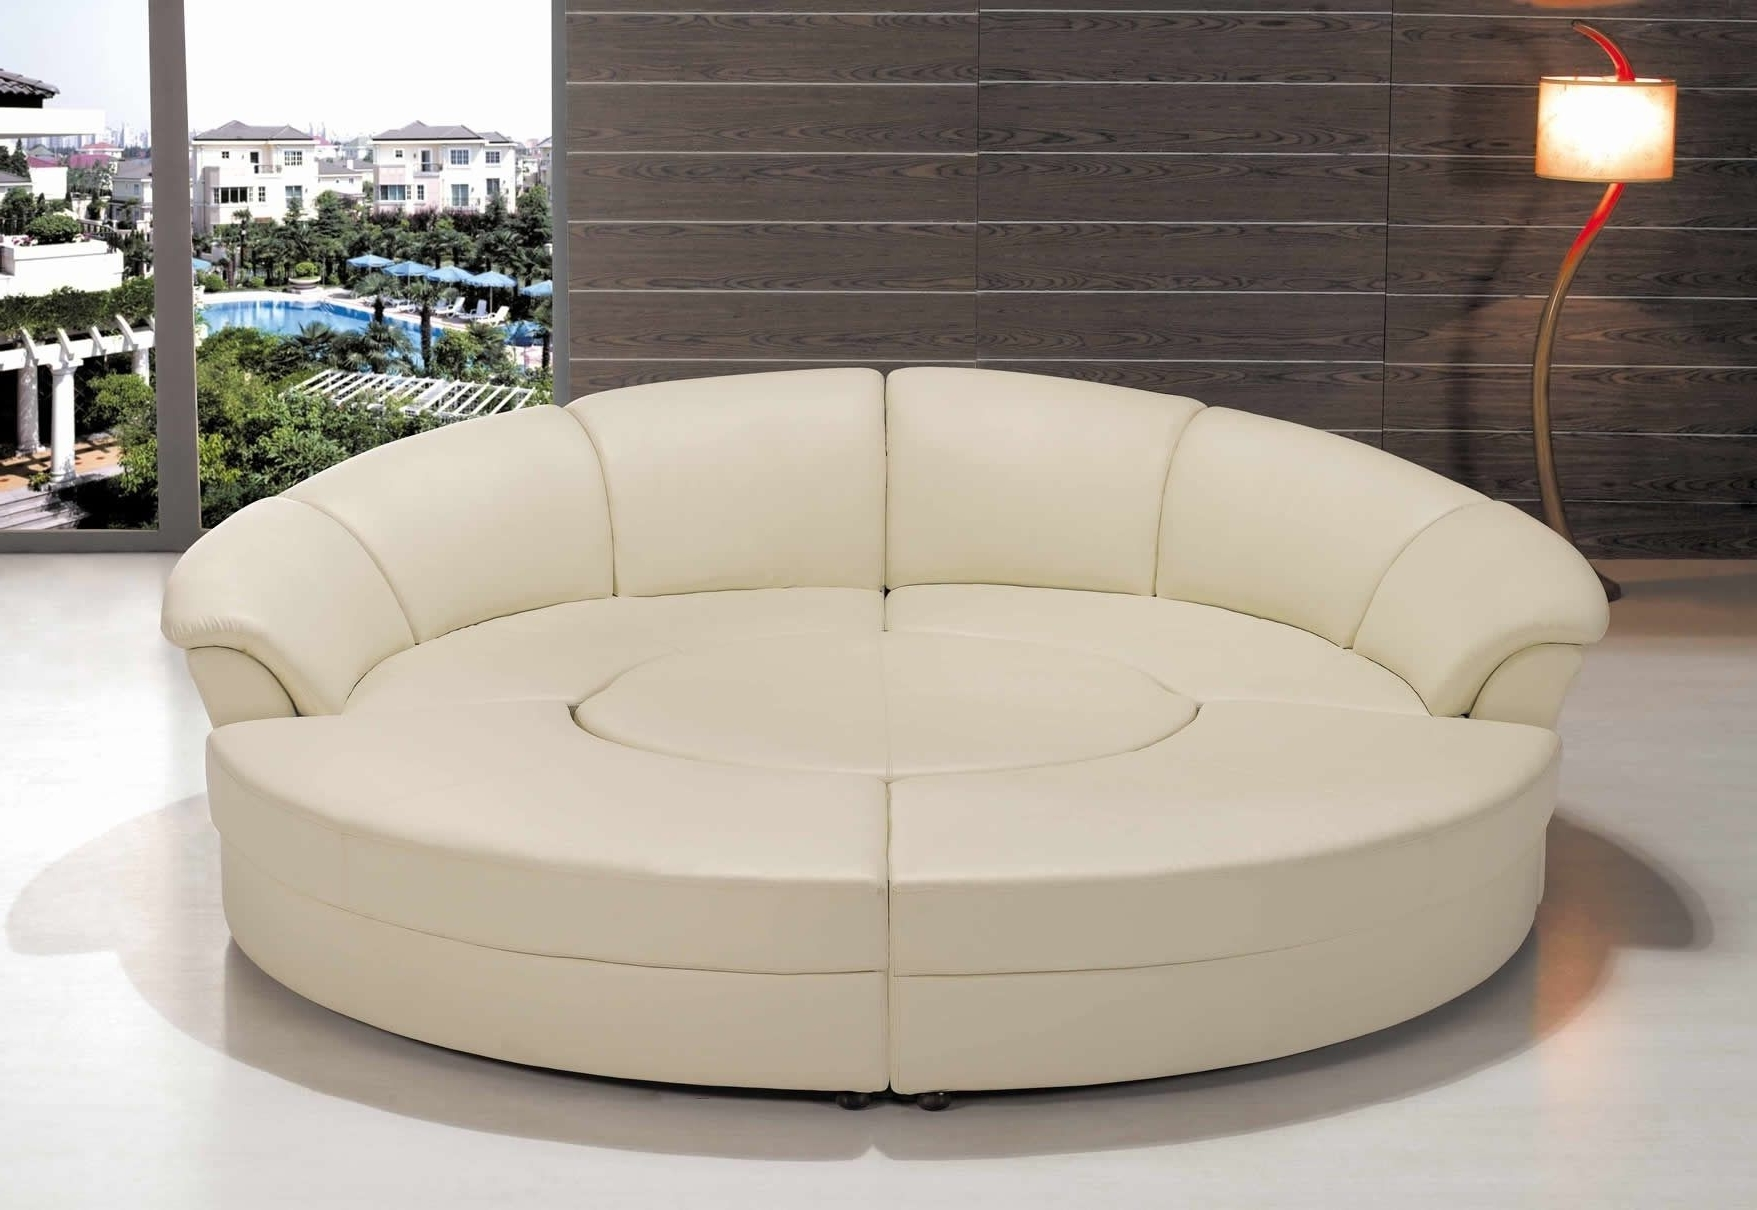 Semi Circular Sectional Sofa 2 – Semi Circular Sofa Uk, Sofa With Regard To Most Up To Date Round Sofas (View 12 of 15)